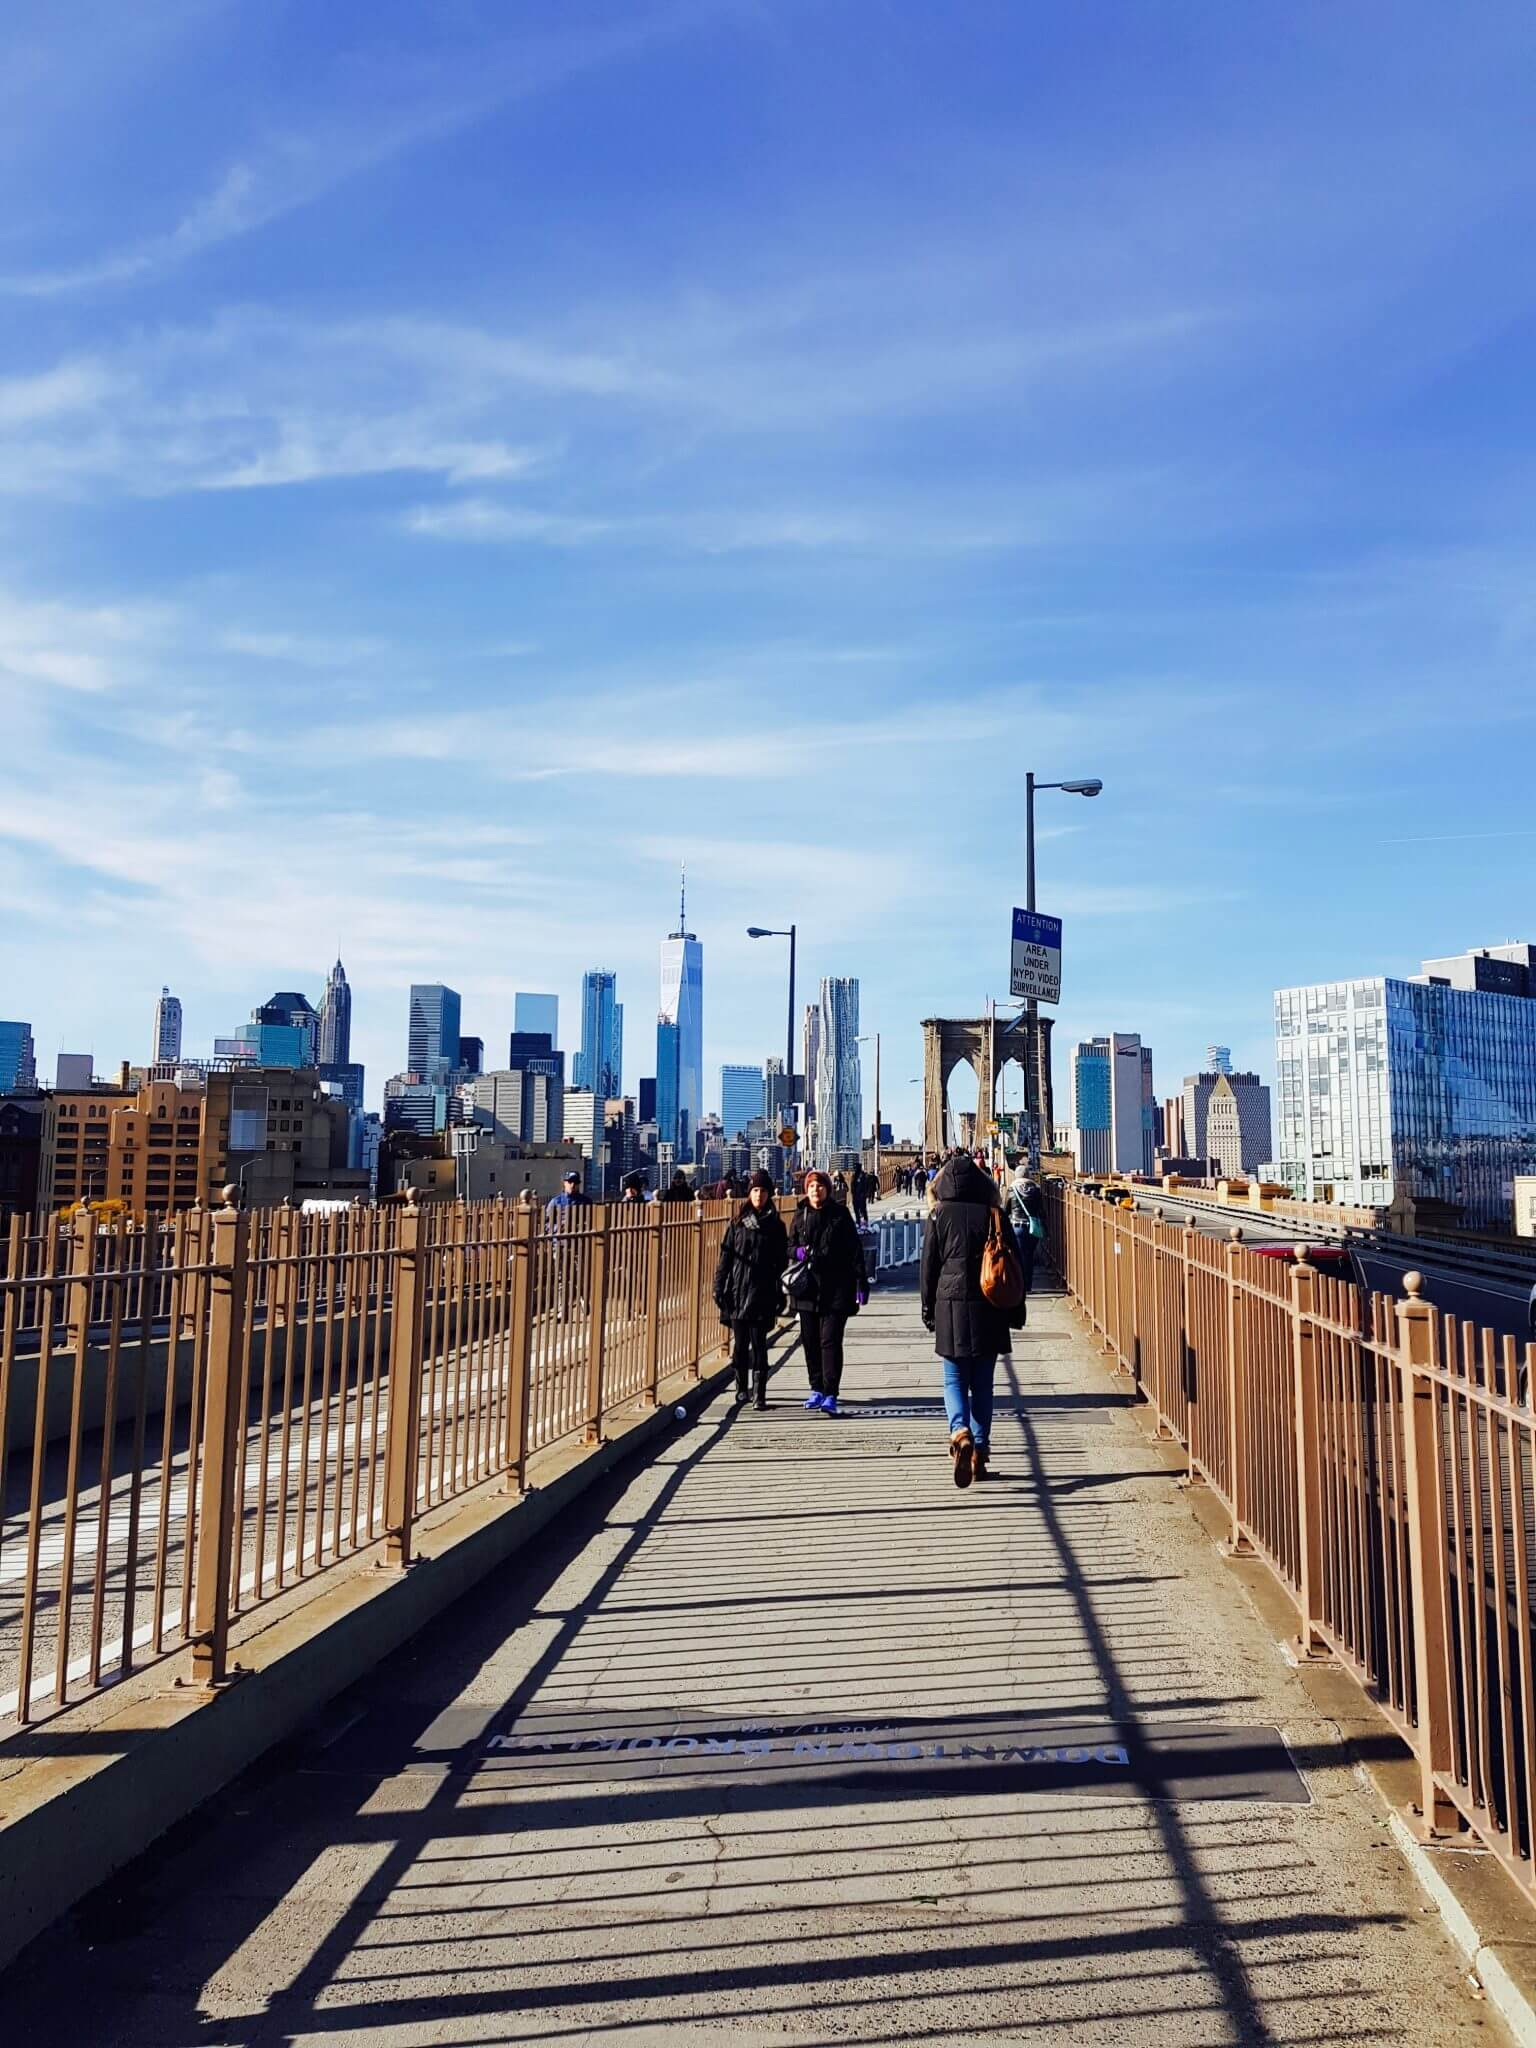 aller sur le brooklyn bridge